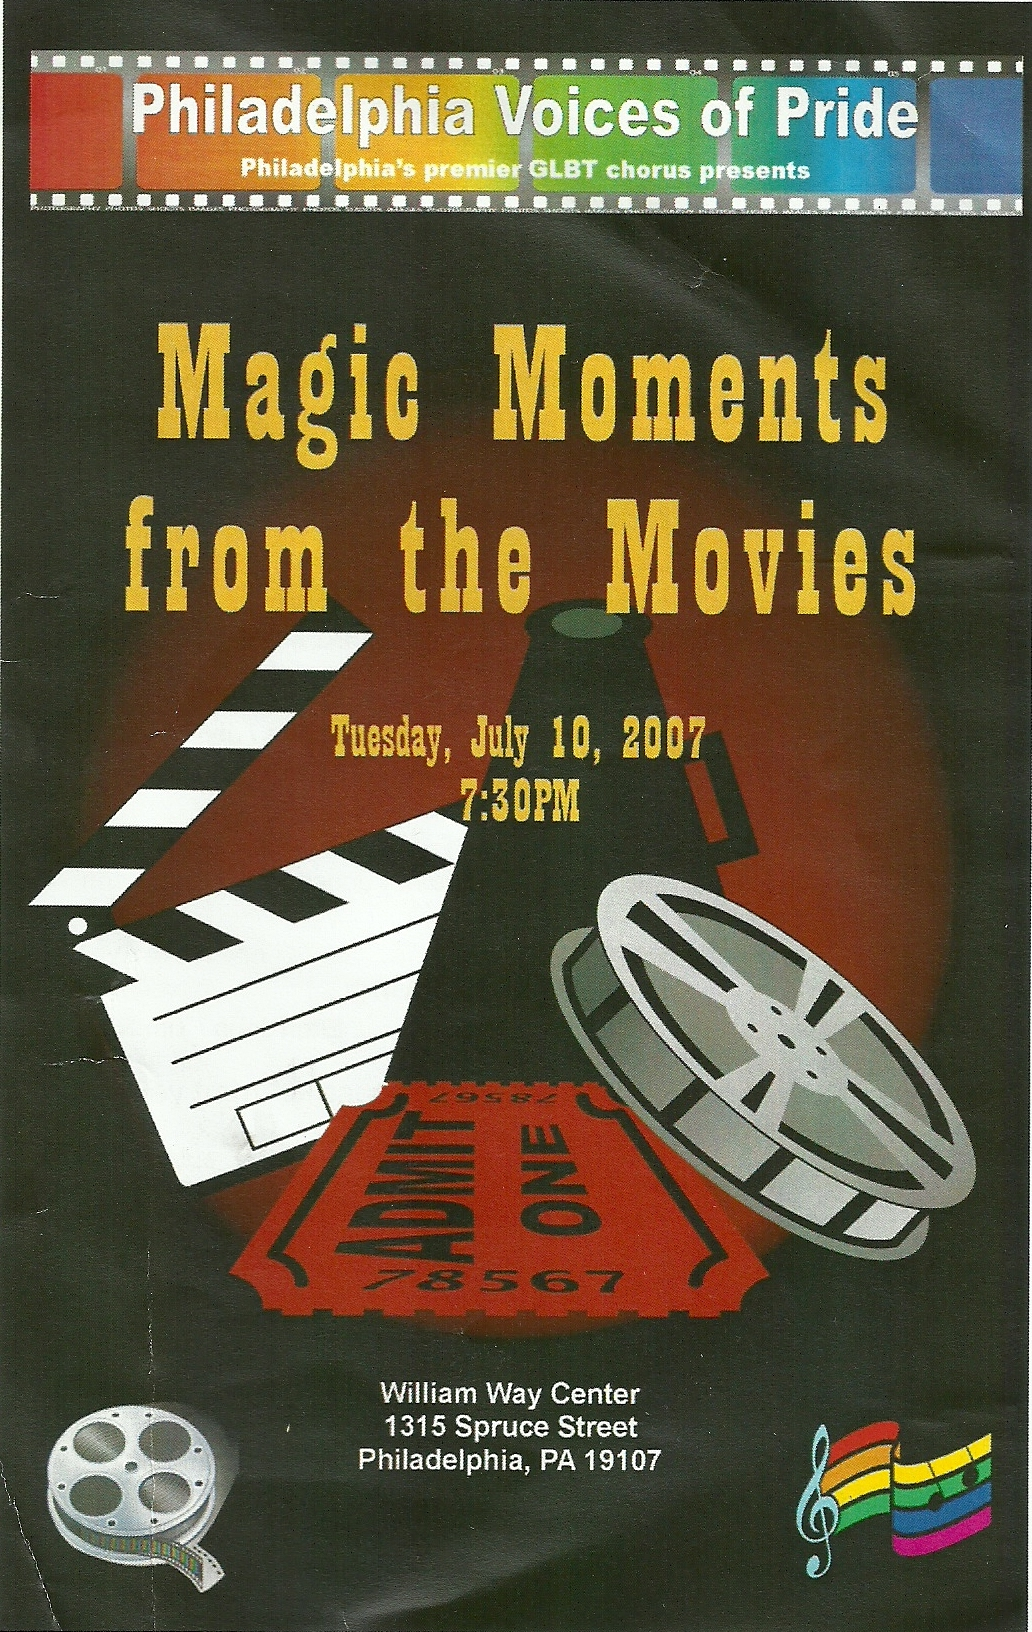 Magic Moments from the Movies